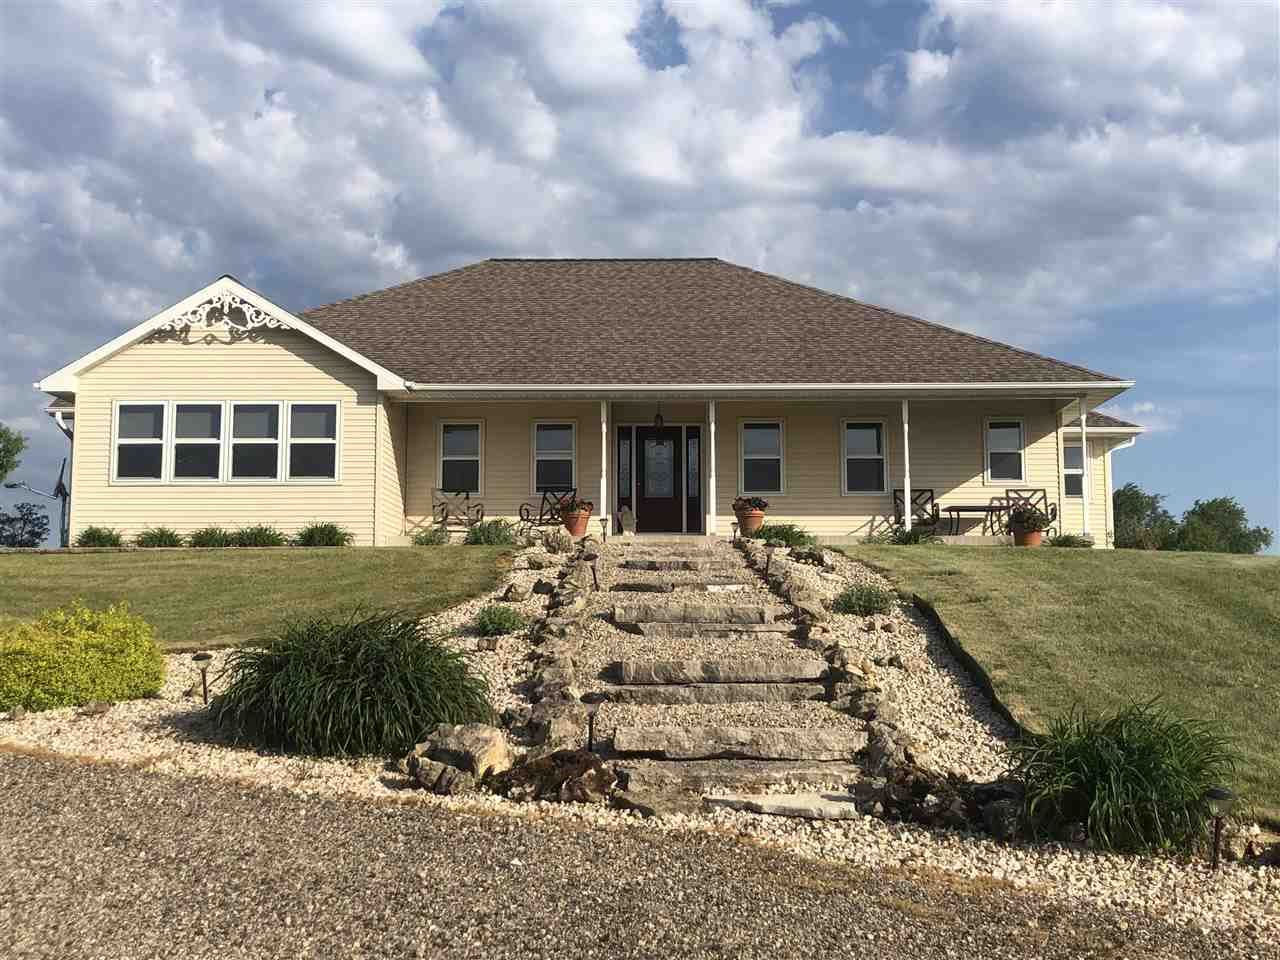 21524 Glider Ave, Tomah, WI 54660 - #: 1911201